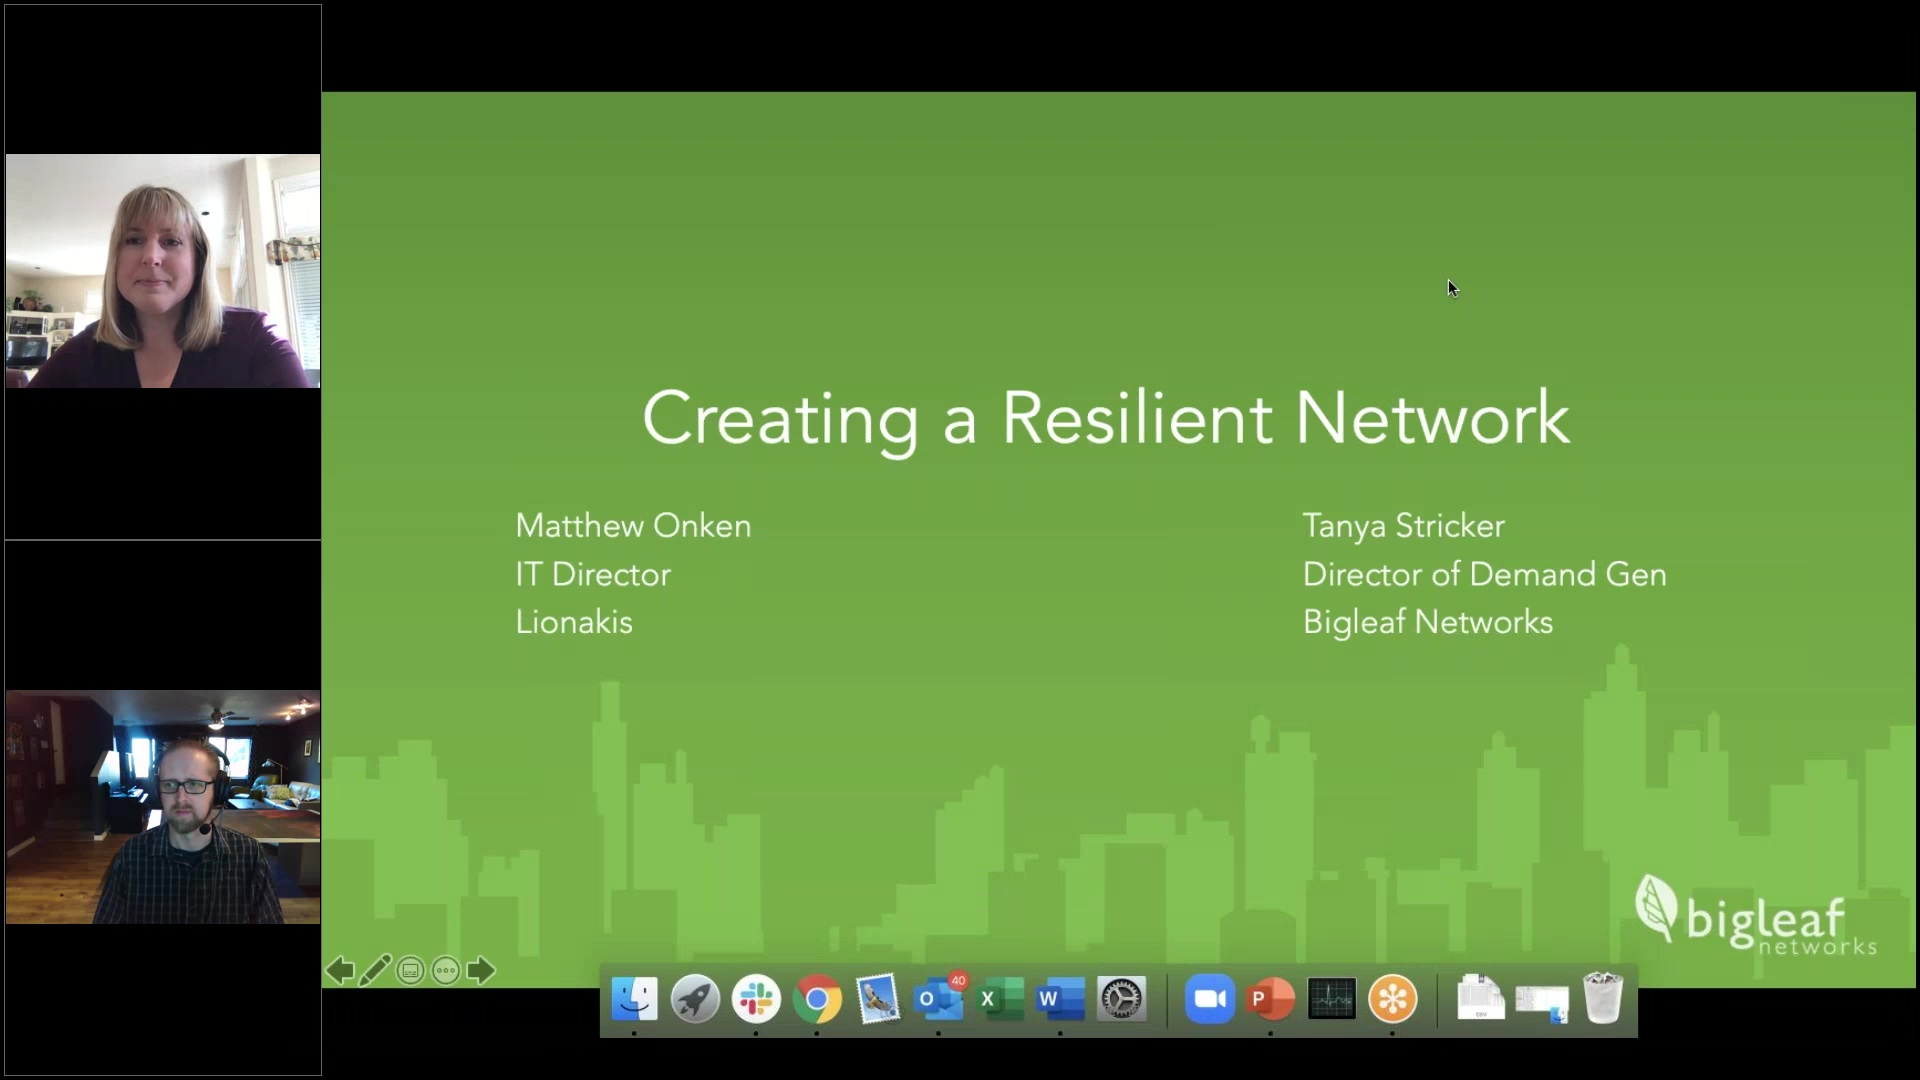 Creating a Resilient Network